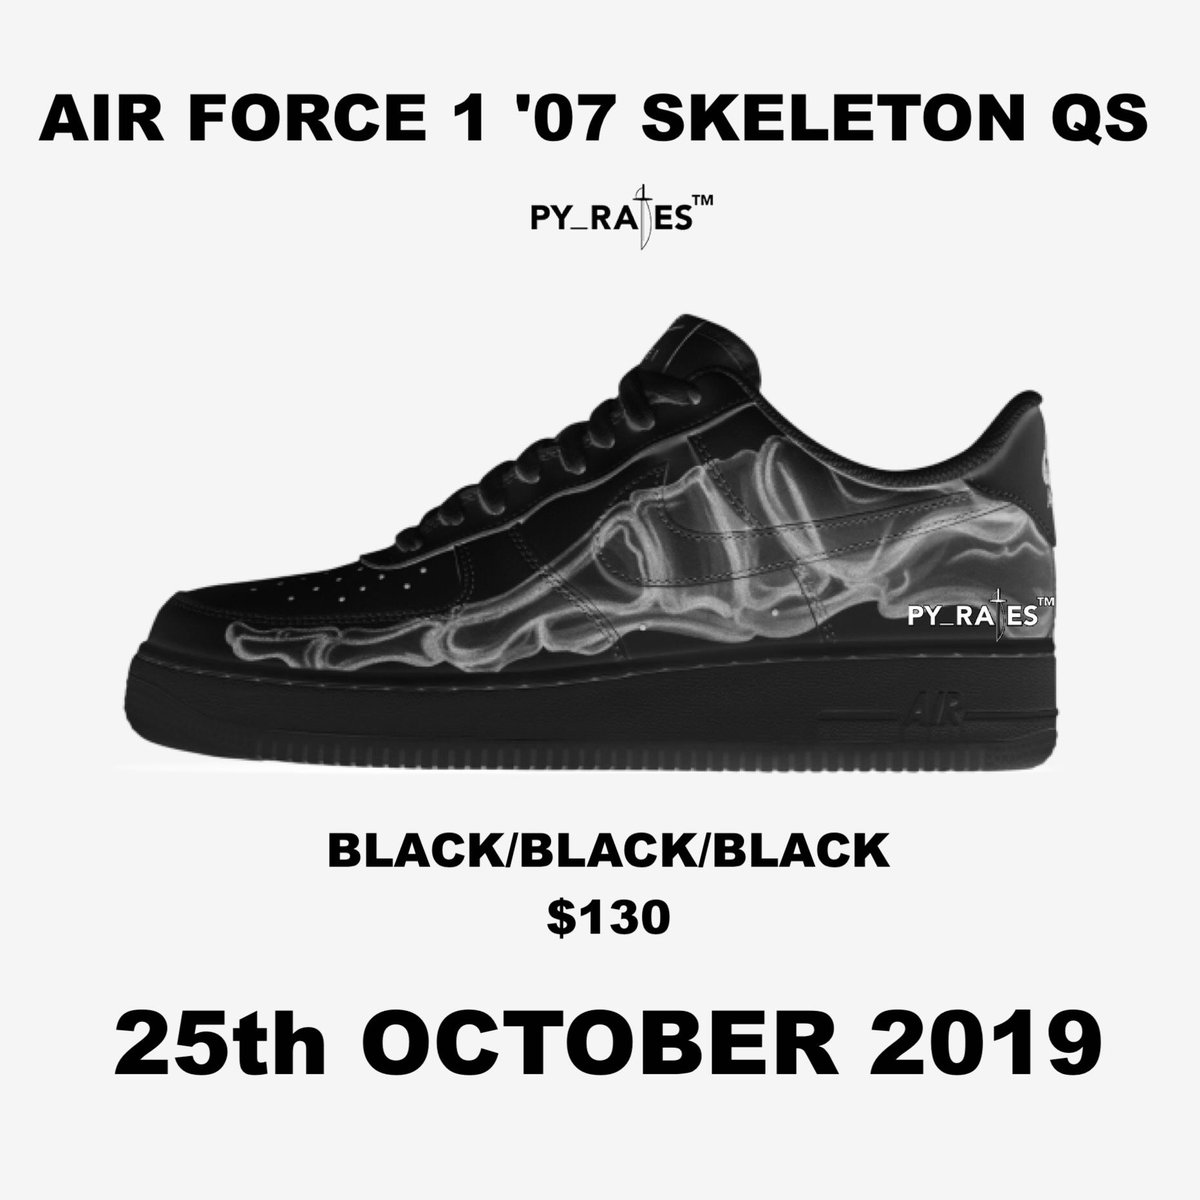 reputable site caa9d a557a Nike Air Force 1 Low Black Skeleton Release Date - Sneaker ...